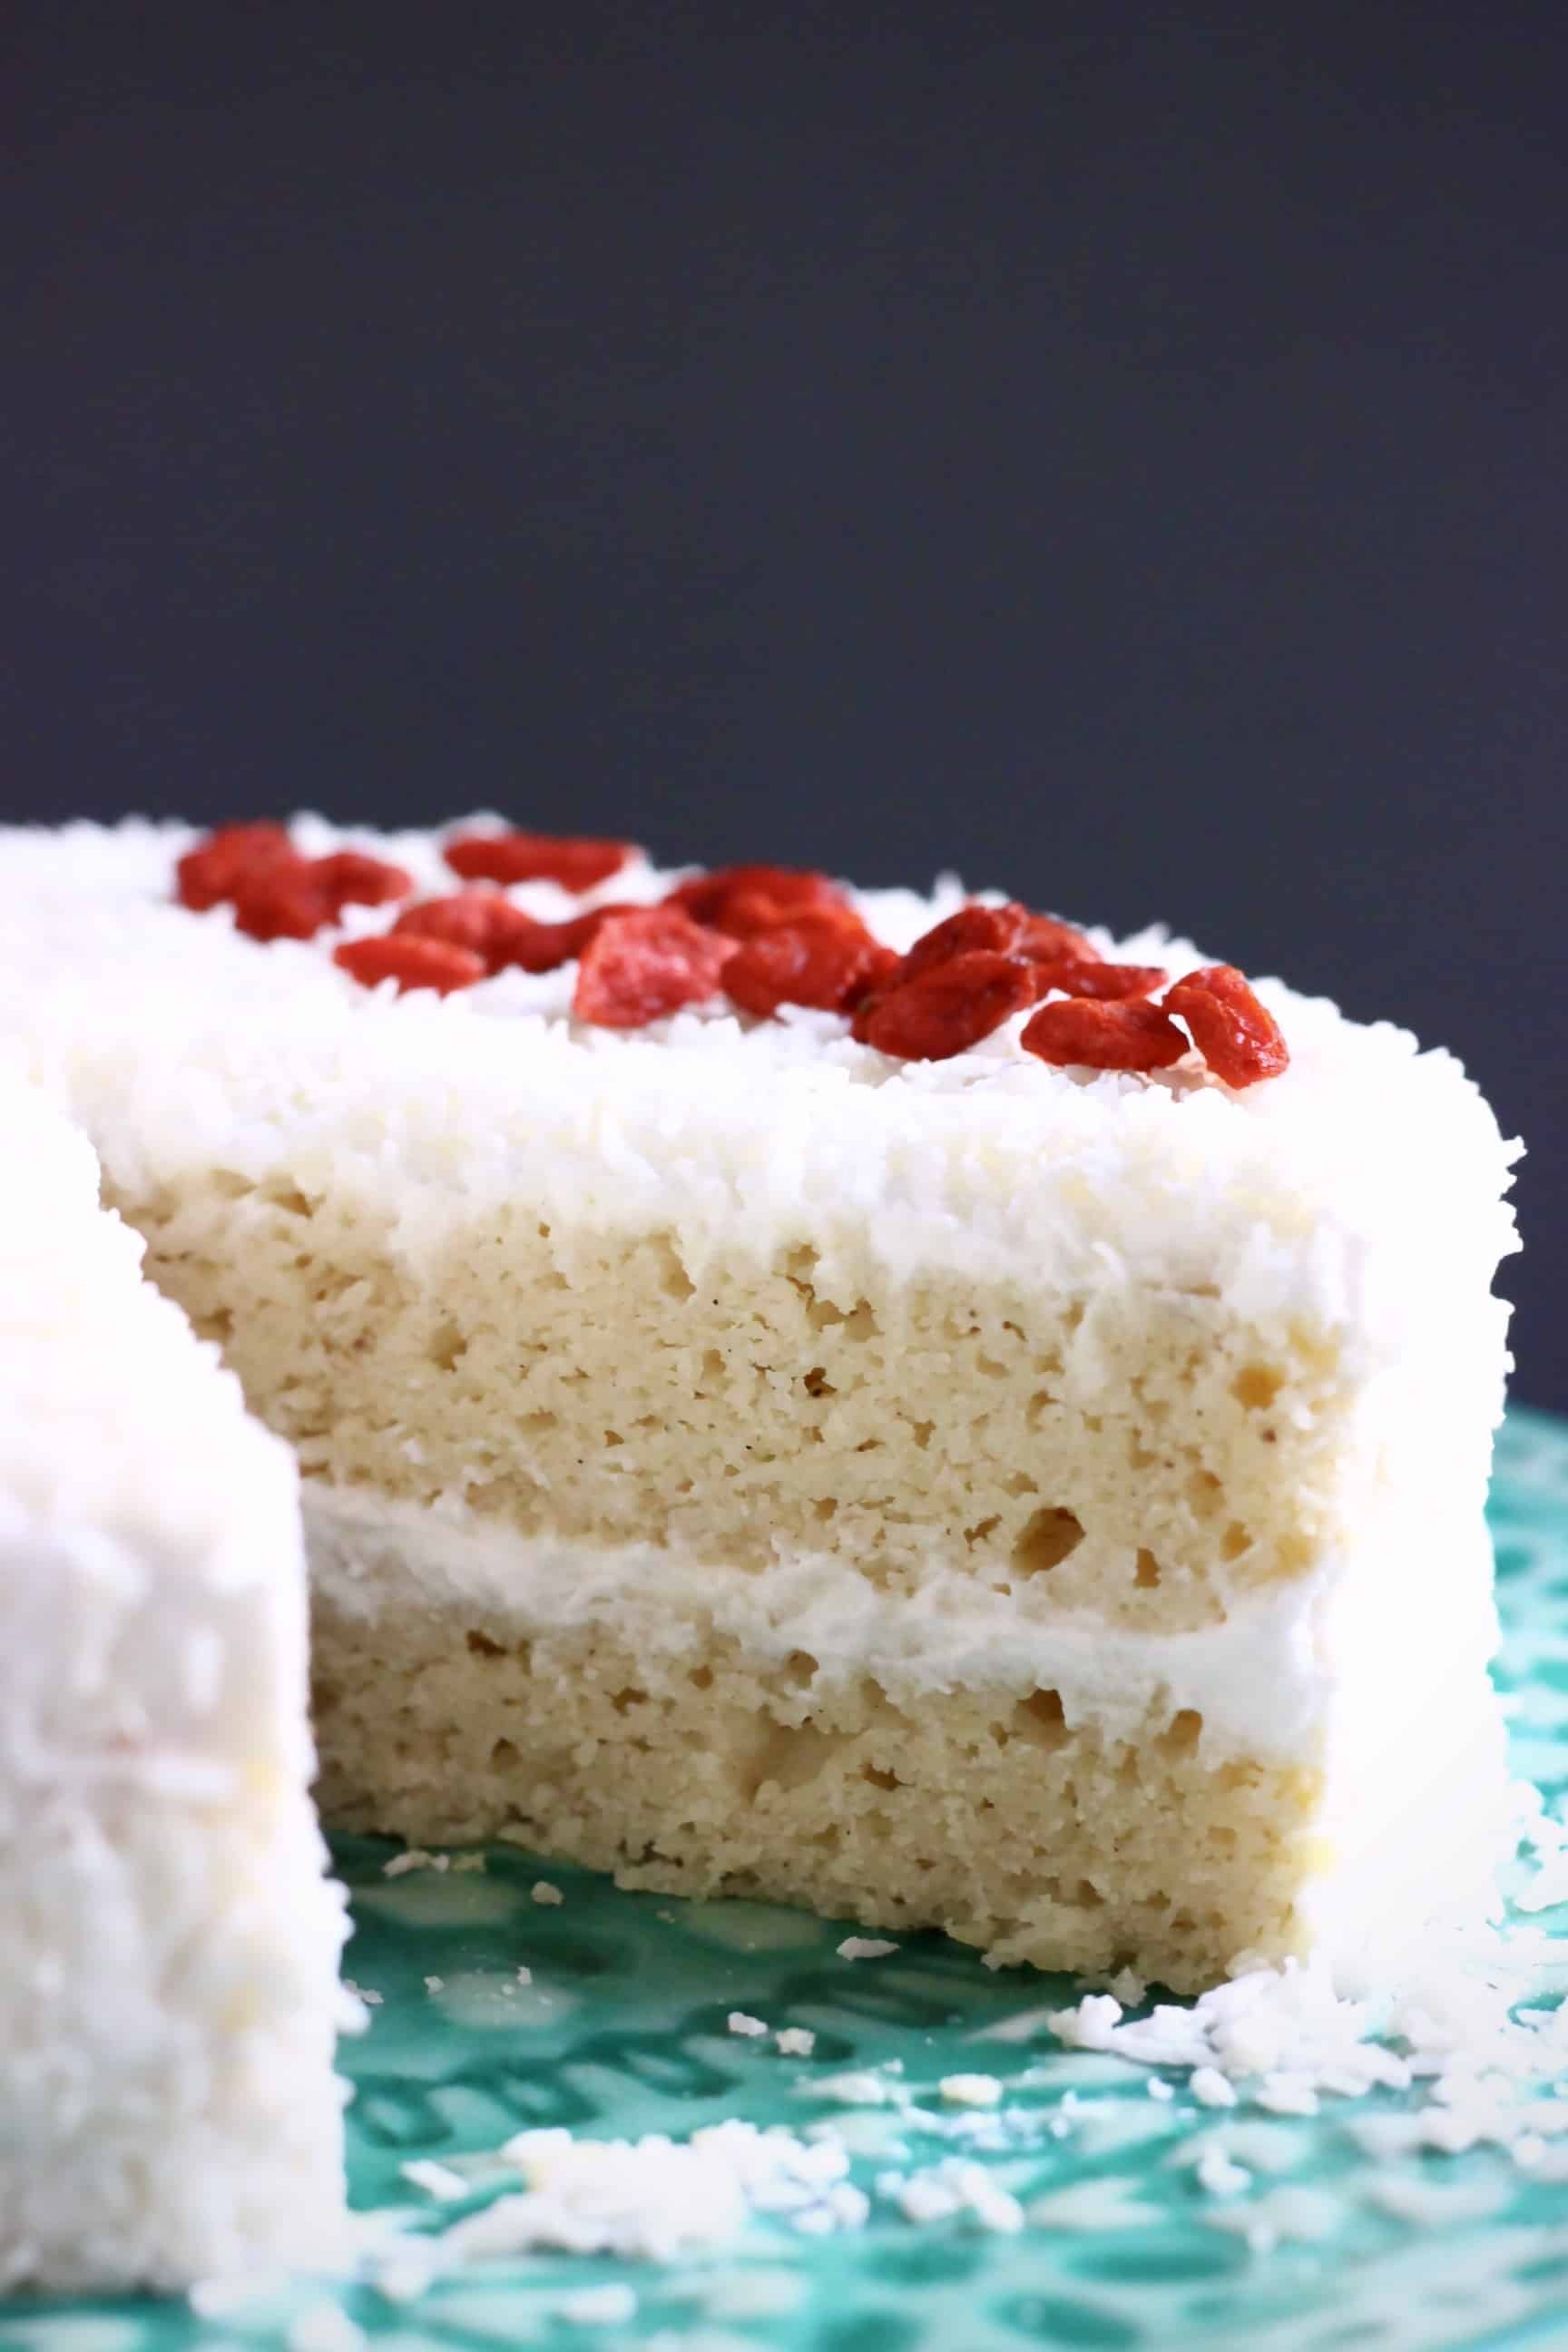 A sliced gluten-free vegan coconut sponge cake topped with desiccated coconut and red goji berries